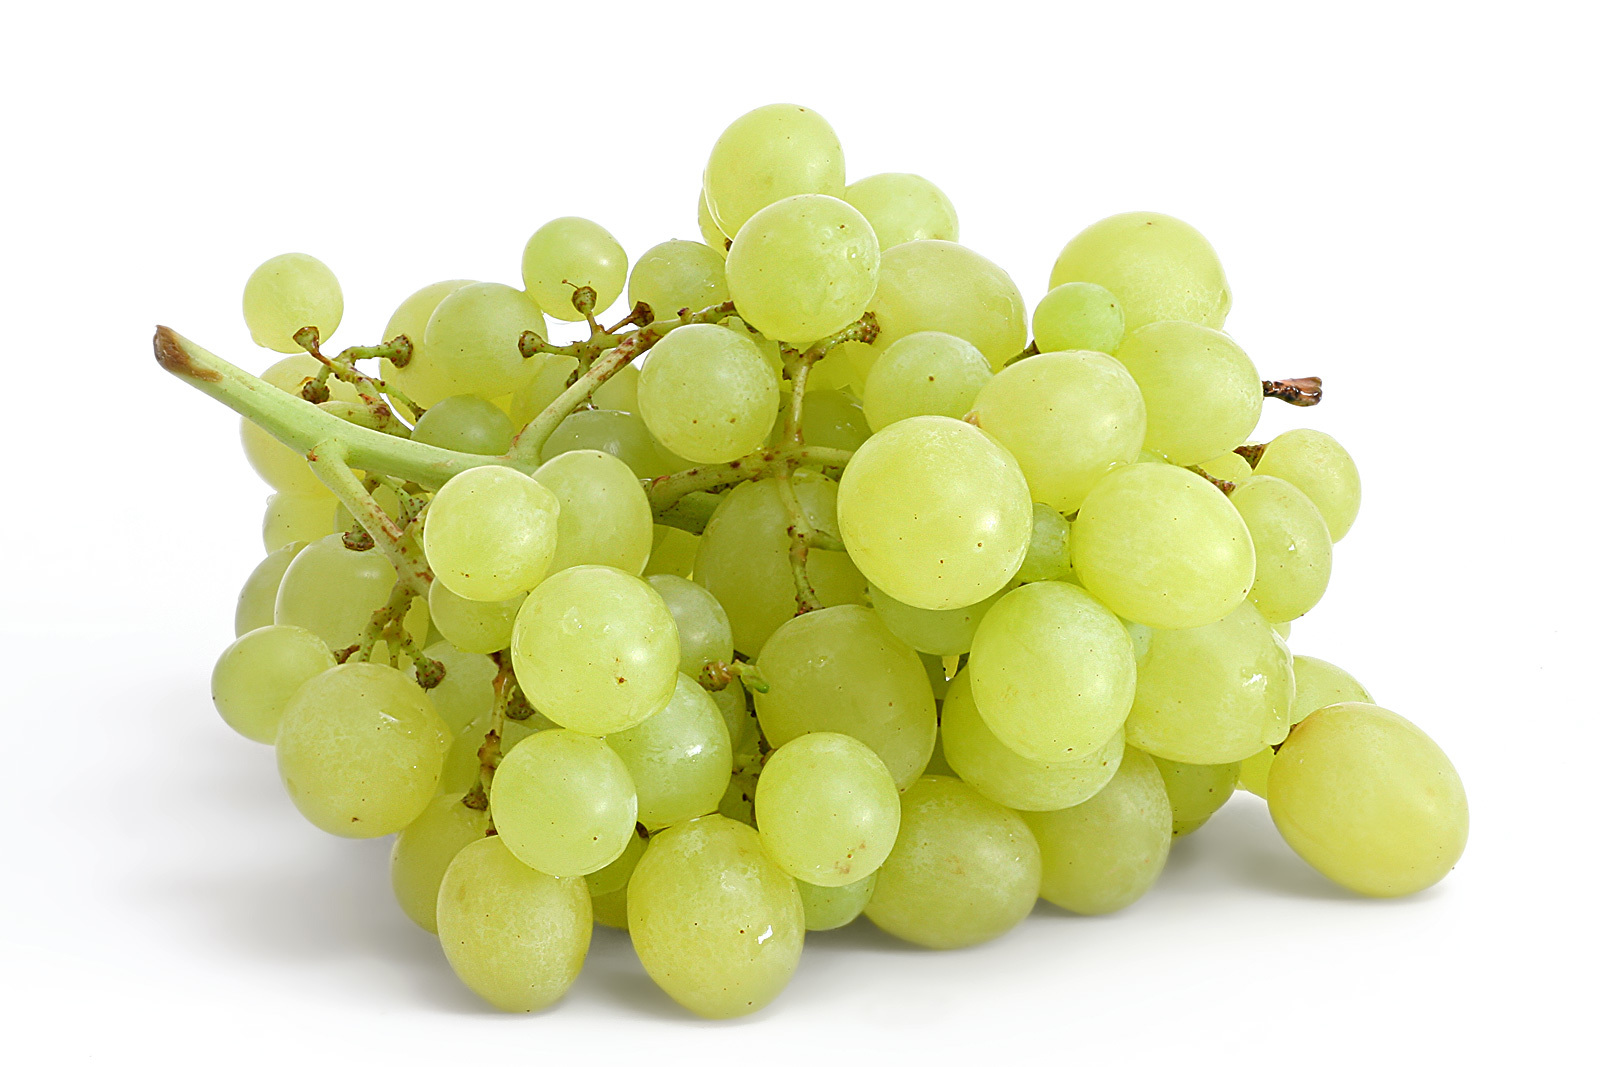 https://marco.kz/media/products/Table_grapes_on_white.jpg